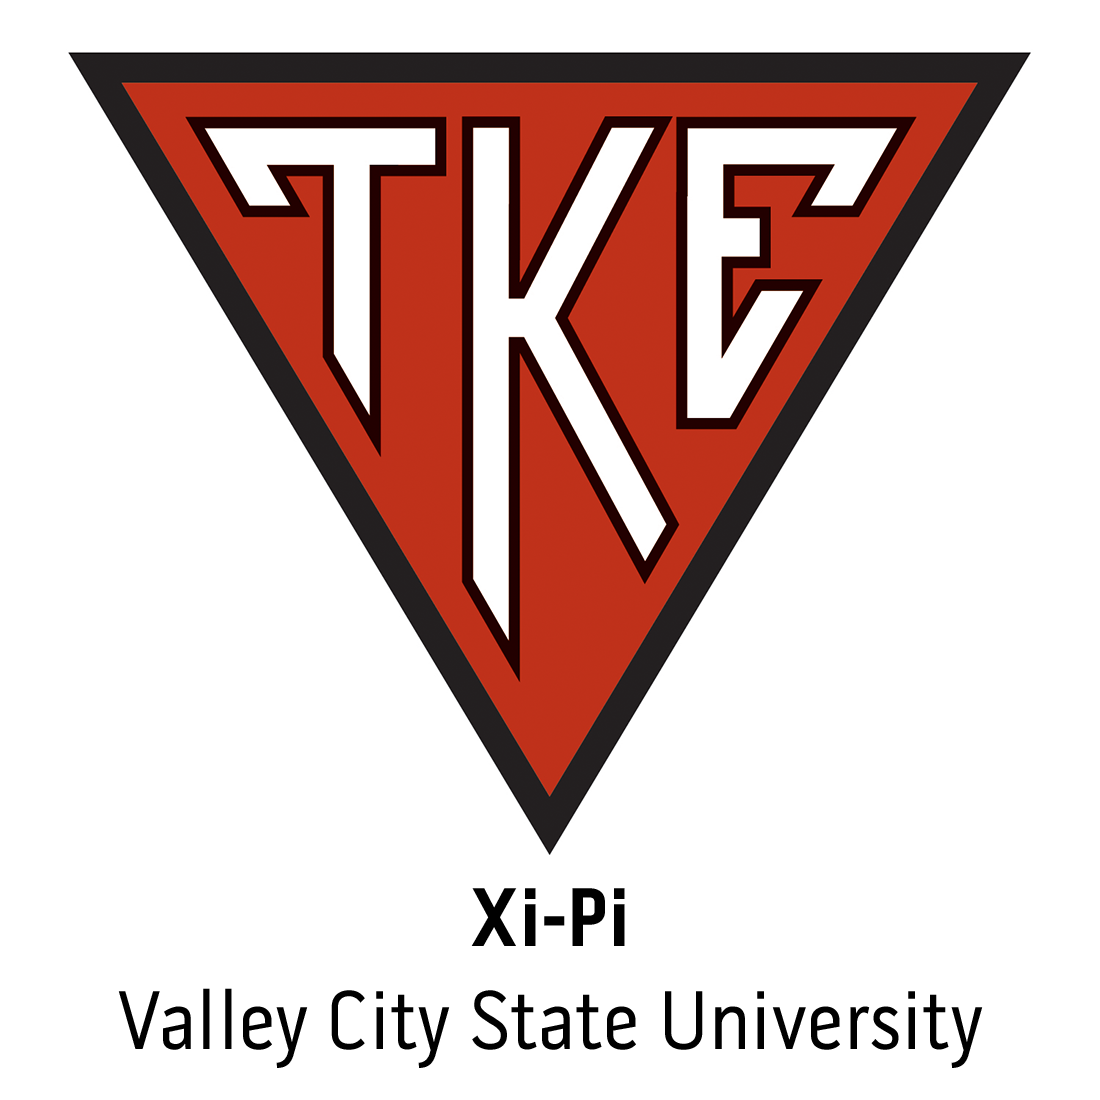 Xi-Pi Chapter at Valley City State University